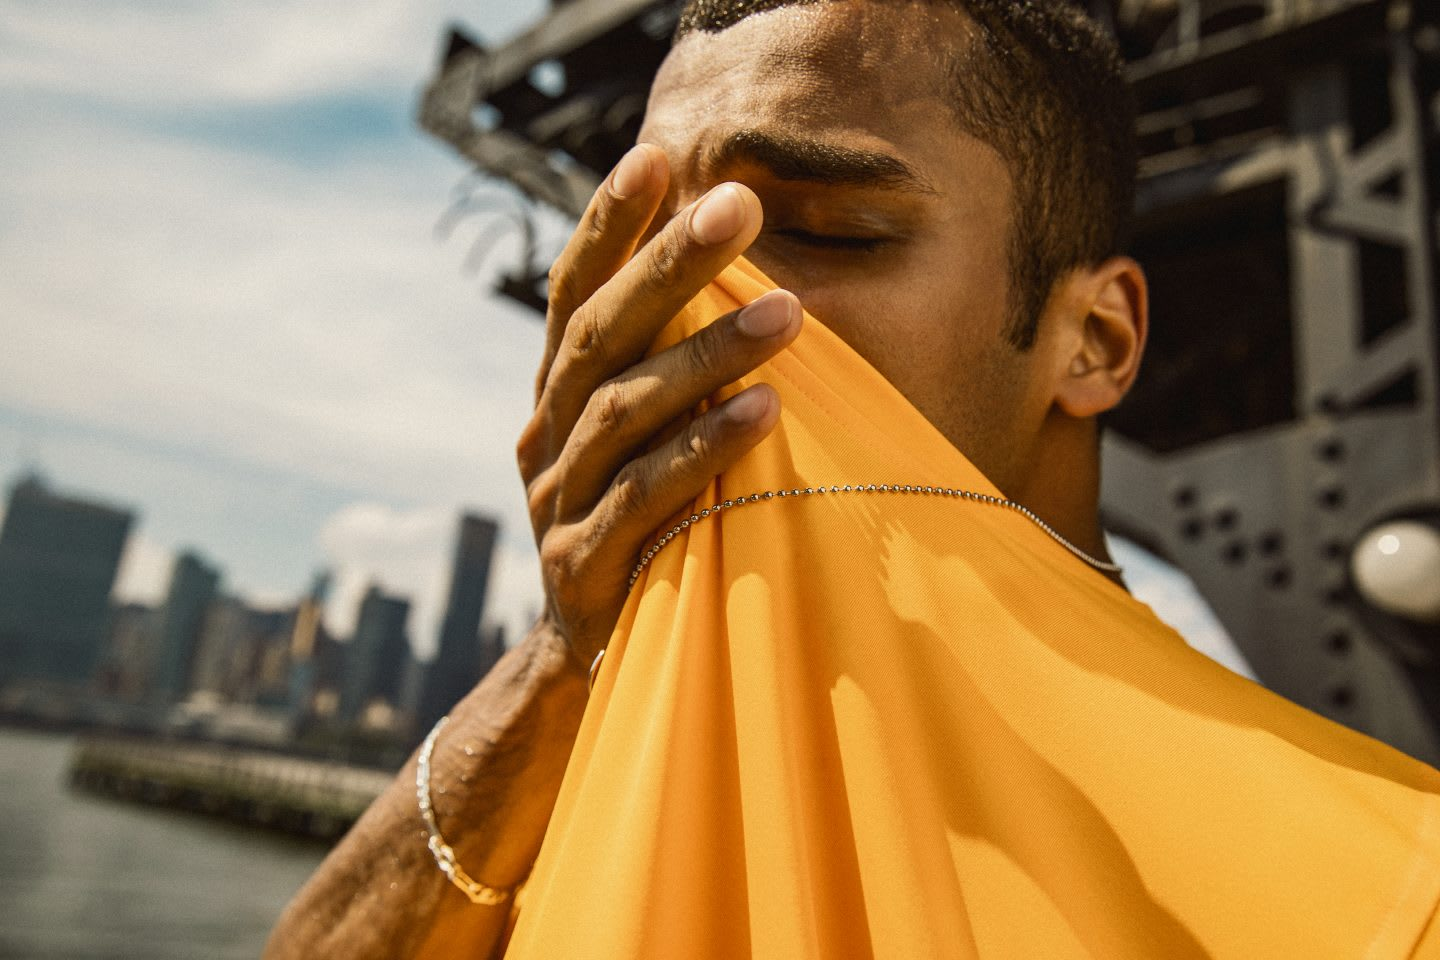 Man wiping sweat off his face with a yellow t-shirt after exercise, sport, fitness, performance, rest, GamePlan A, adidas